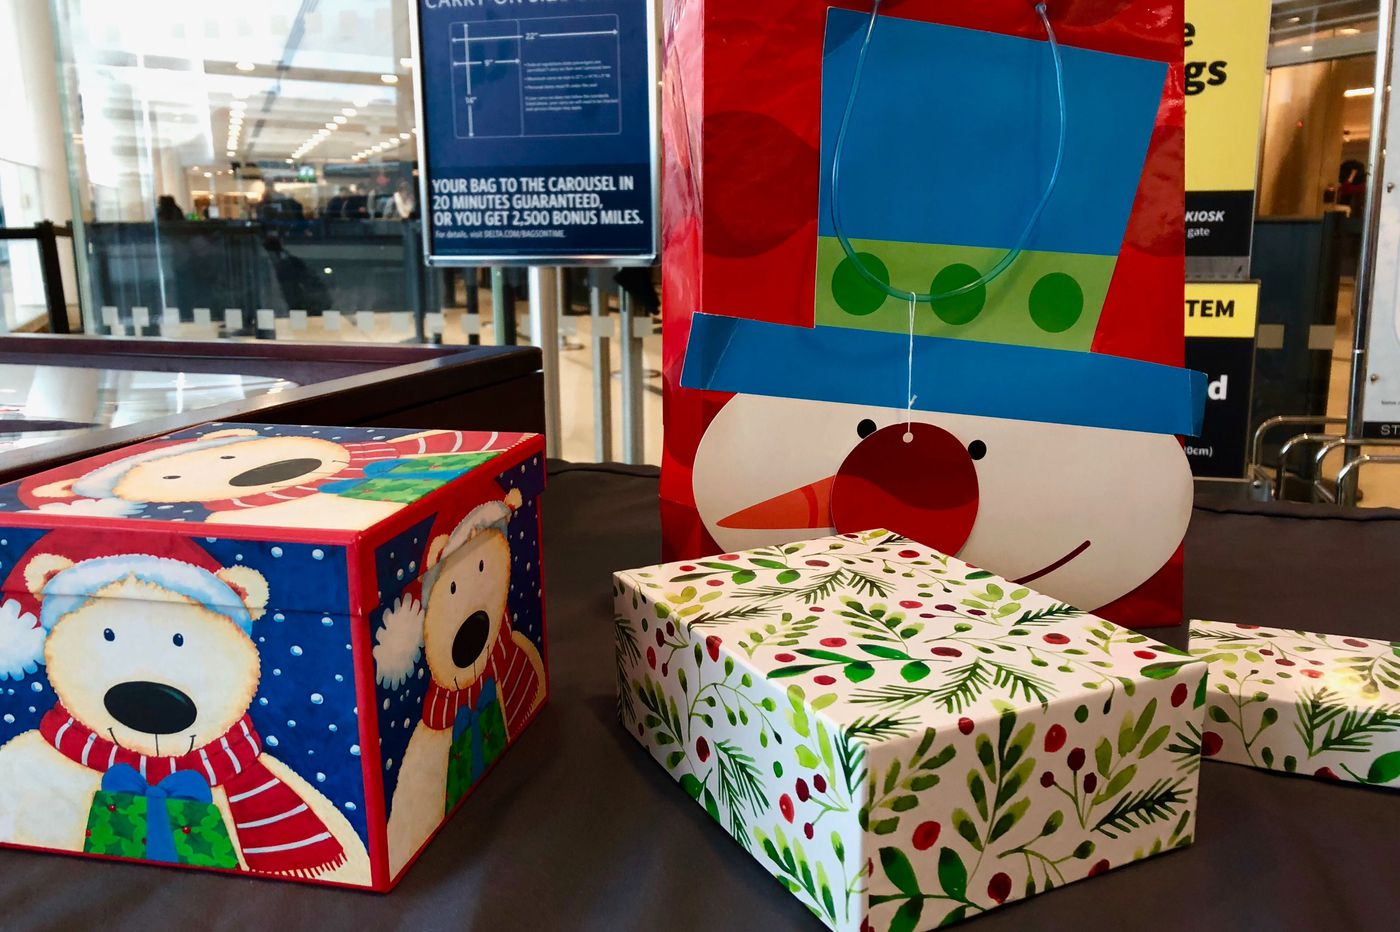 TSA officers don't want to unwrap your Christmas presents at the airport, but they will